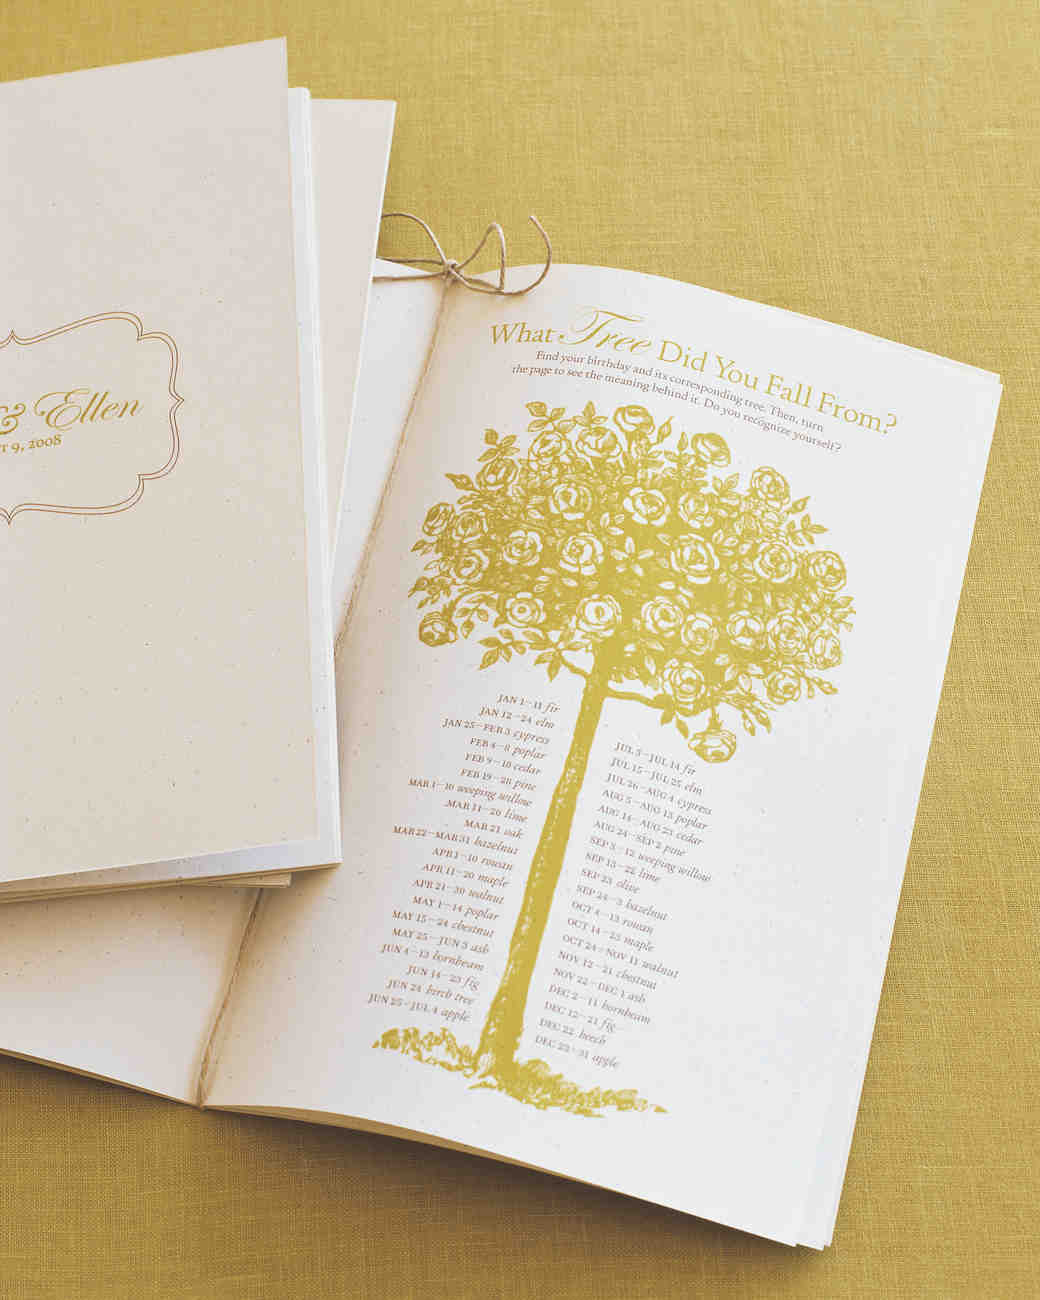 diy-wedding-ceremony-programs-mwa103910_10-0515.jpg